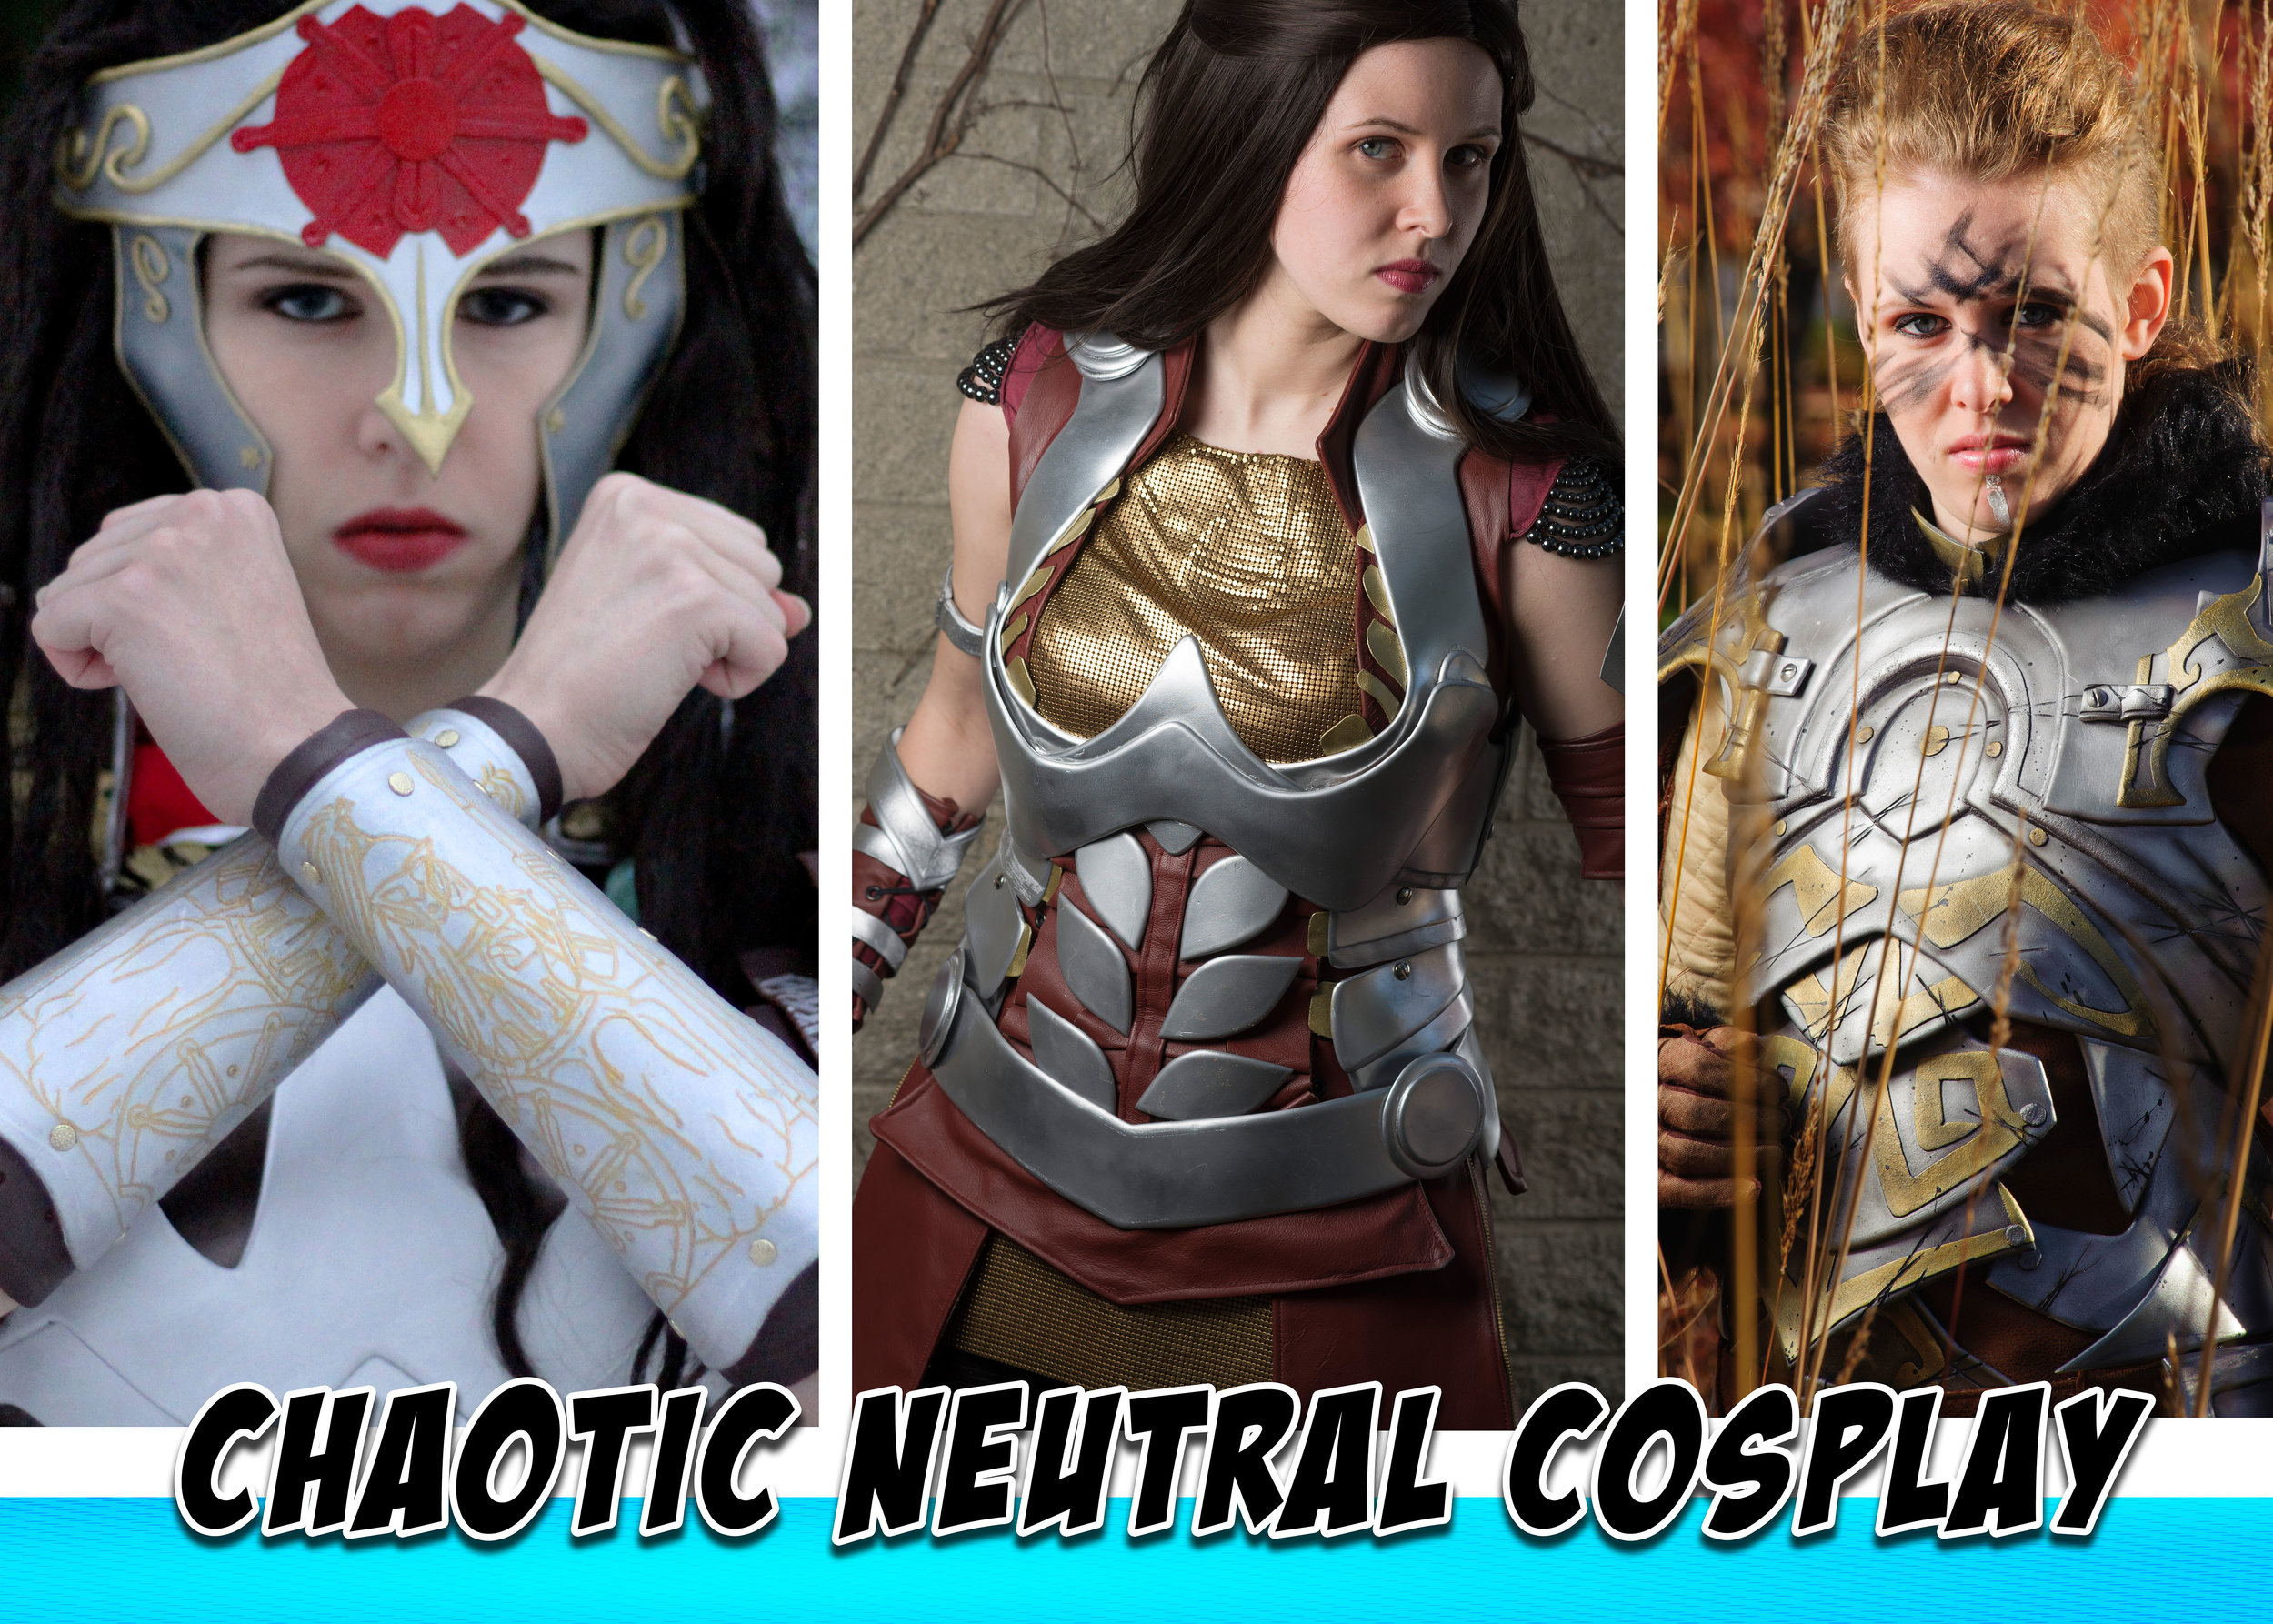 "Chaotic Neutral Cosplay - Chaotic Neutral Cosplay started cosplaying with the comic version of Marvel's Lady Sif... and now has three versions of Sif, way too many other cosplays and a slight obsession for dressing up as strong characters with big pointy things!CNC has won several awards for costuming, including first places and best in shows, and recently started competing in ""higher stress"" cosplay circles - including C2E2 in Chicago where CNC won 1st in the Armor division with their Skyrim armor.Before cosplay, CNC worked on replica costumes and dabbled in film and voice acting, appearing in ""Glee"" and ""Private Practice"" when living in LA and being featured on several radio shows after moving back to Michigan. In the spare time (between new cosplays!), CNC enjoys writing, sketching and ballroom dance. Please come and say hello! CNC accepts hugs and gifts of small Groot-like trees (but only if they dance!)https://www.facebook.com/chaoticneutralcosplay/https://www.instagram.com/chaoticneutralcosplay/"